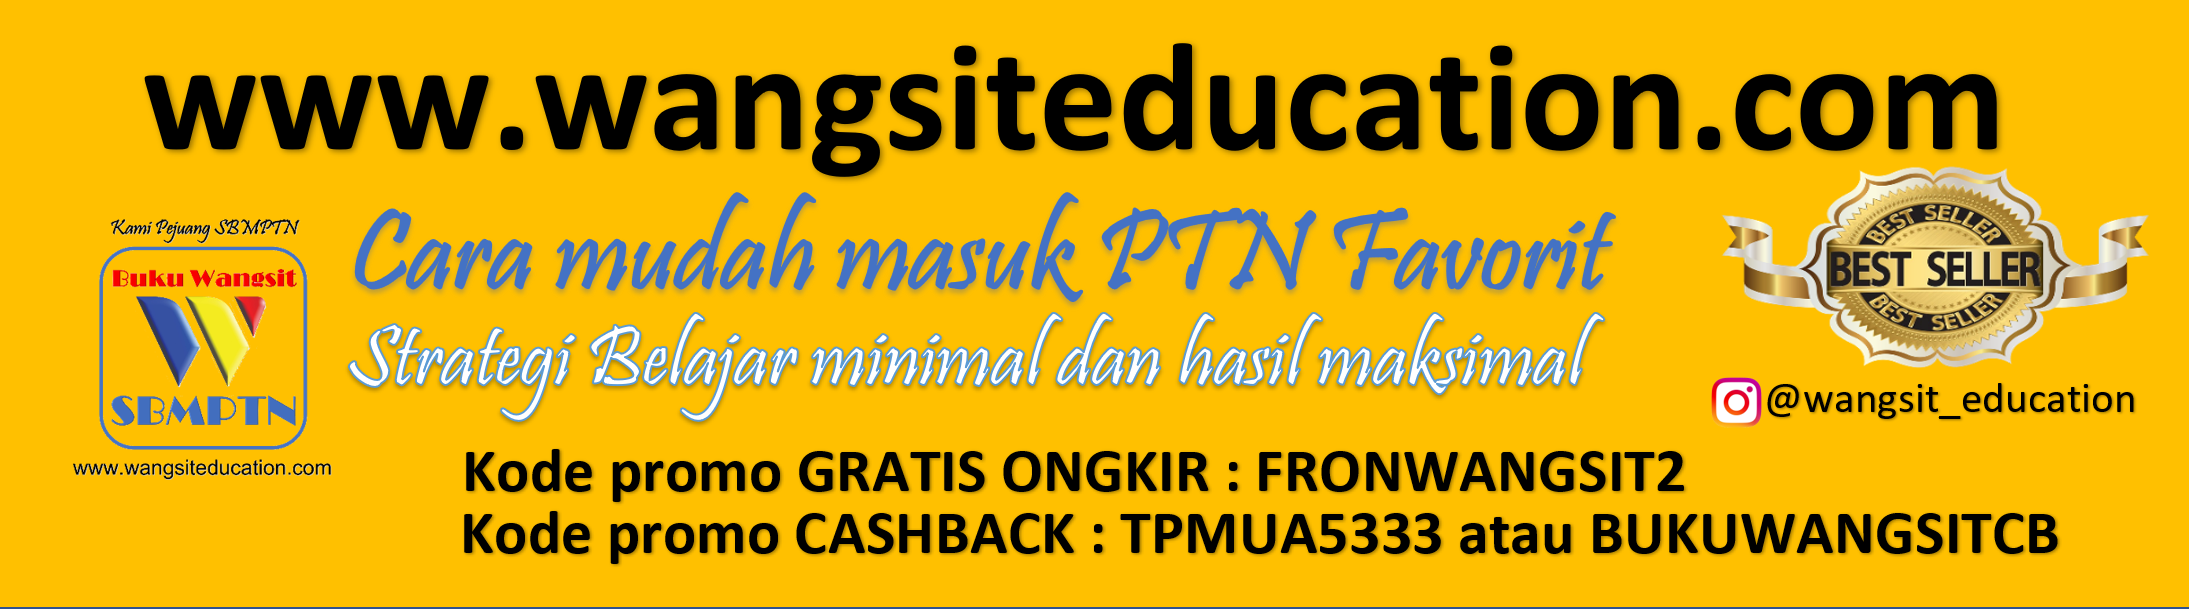 www.wangsiteducation.com